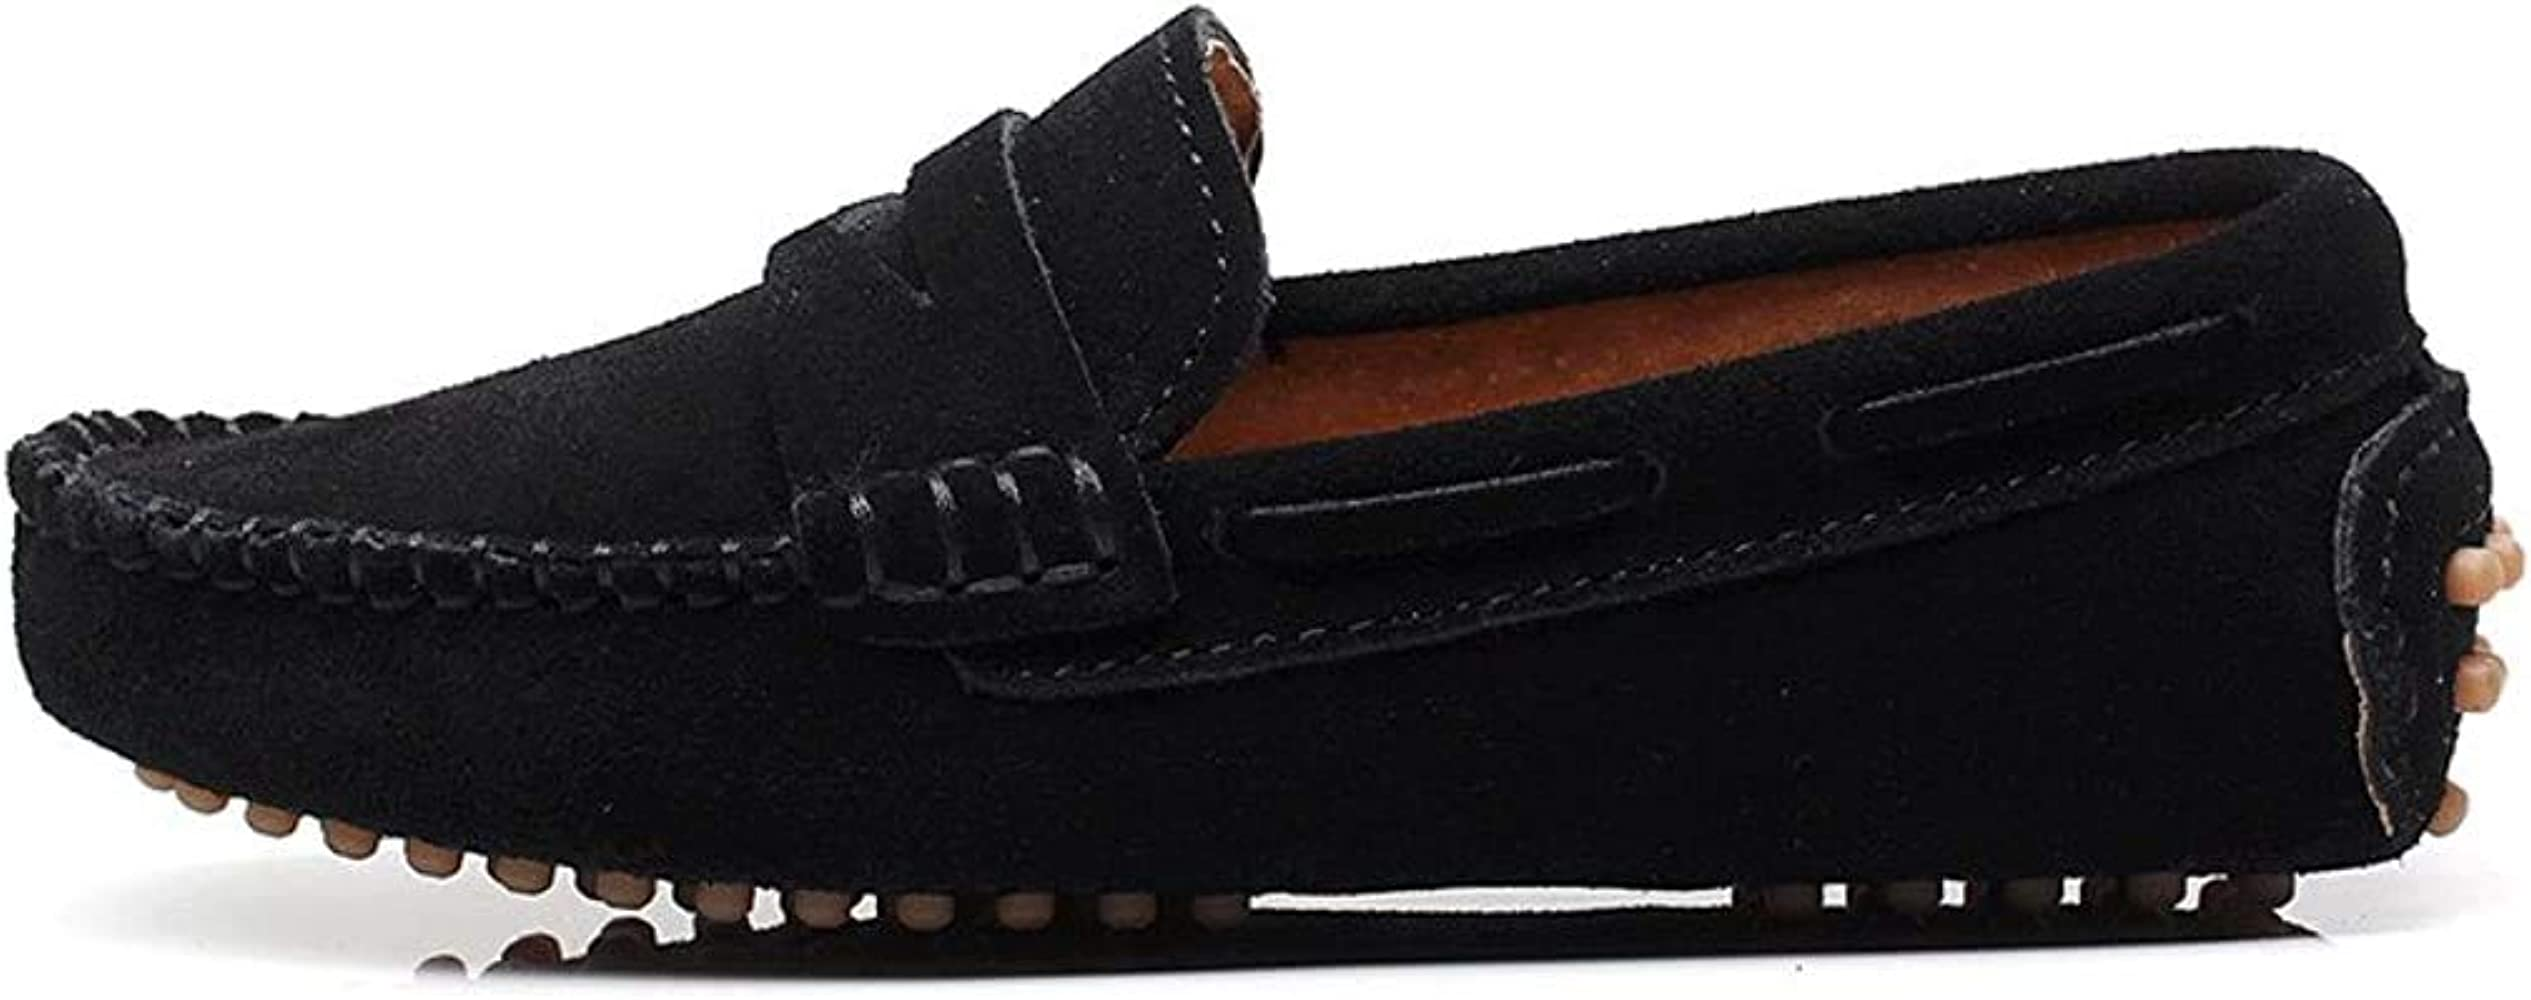 Black Suede Leather Loafers Shoes S8884